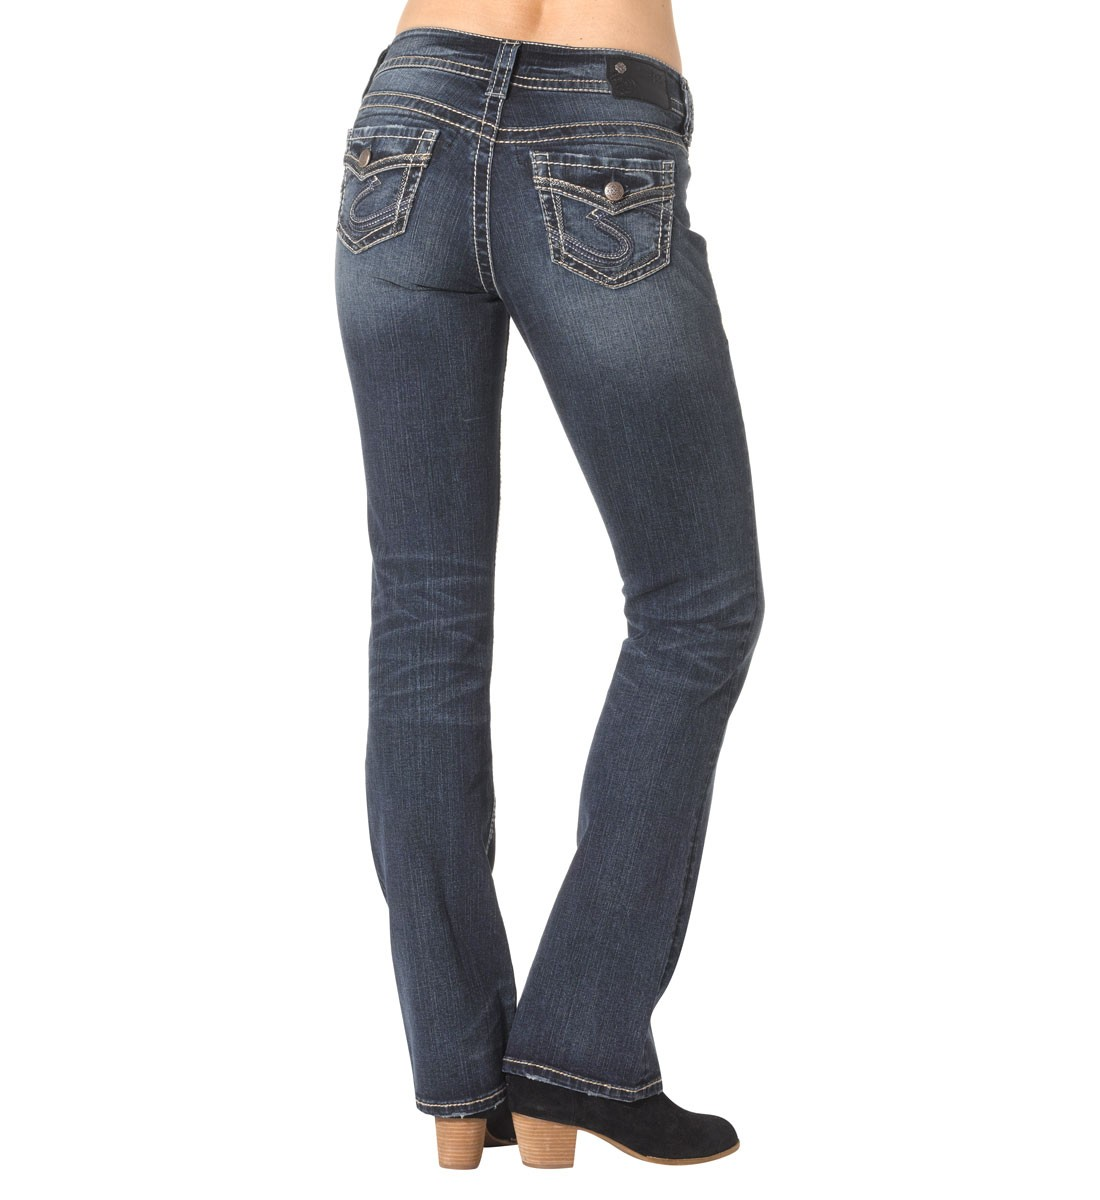 bfa998f07a2 Suki Mid Slim Bootcut Dark Wash Ladies Jeans